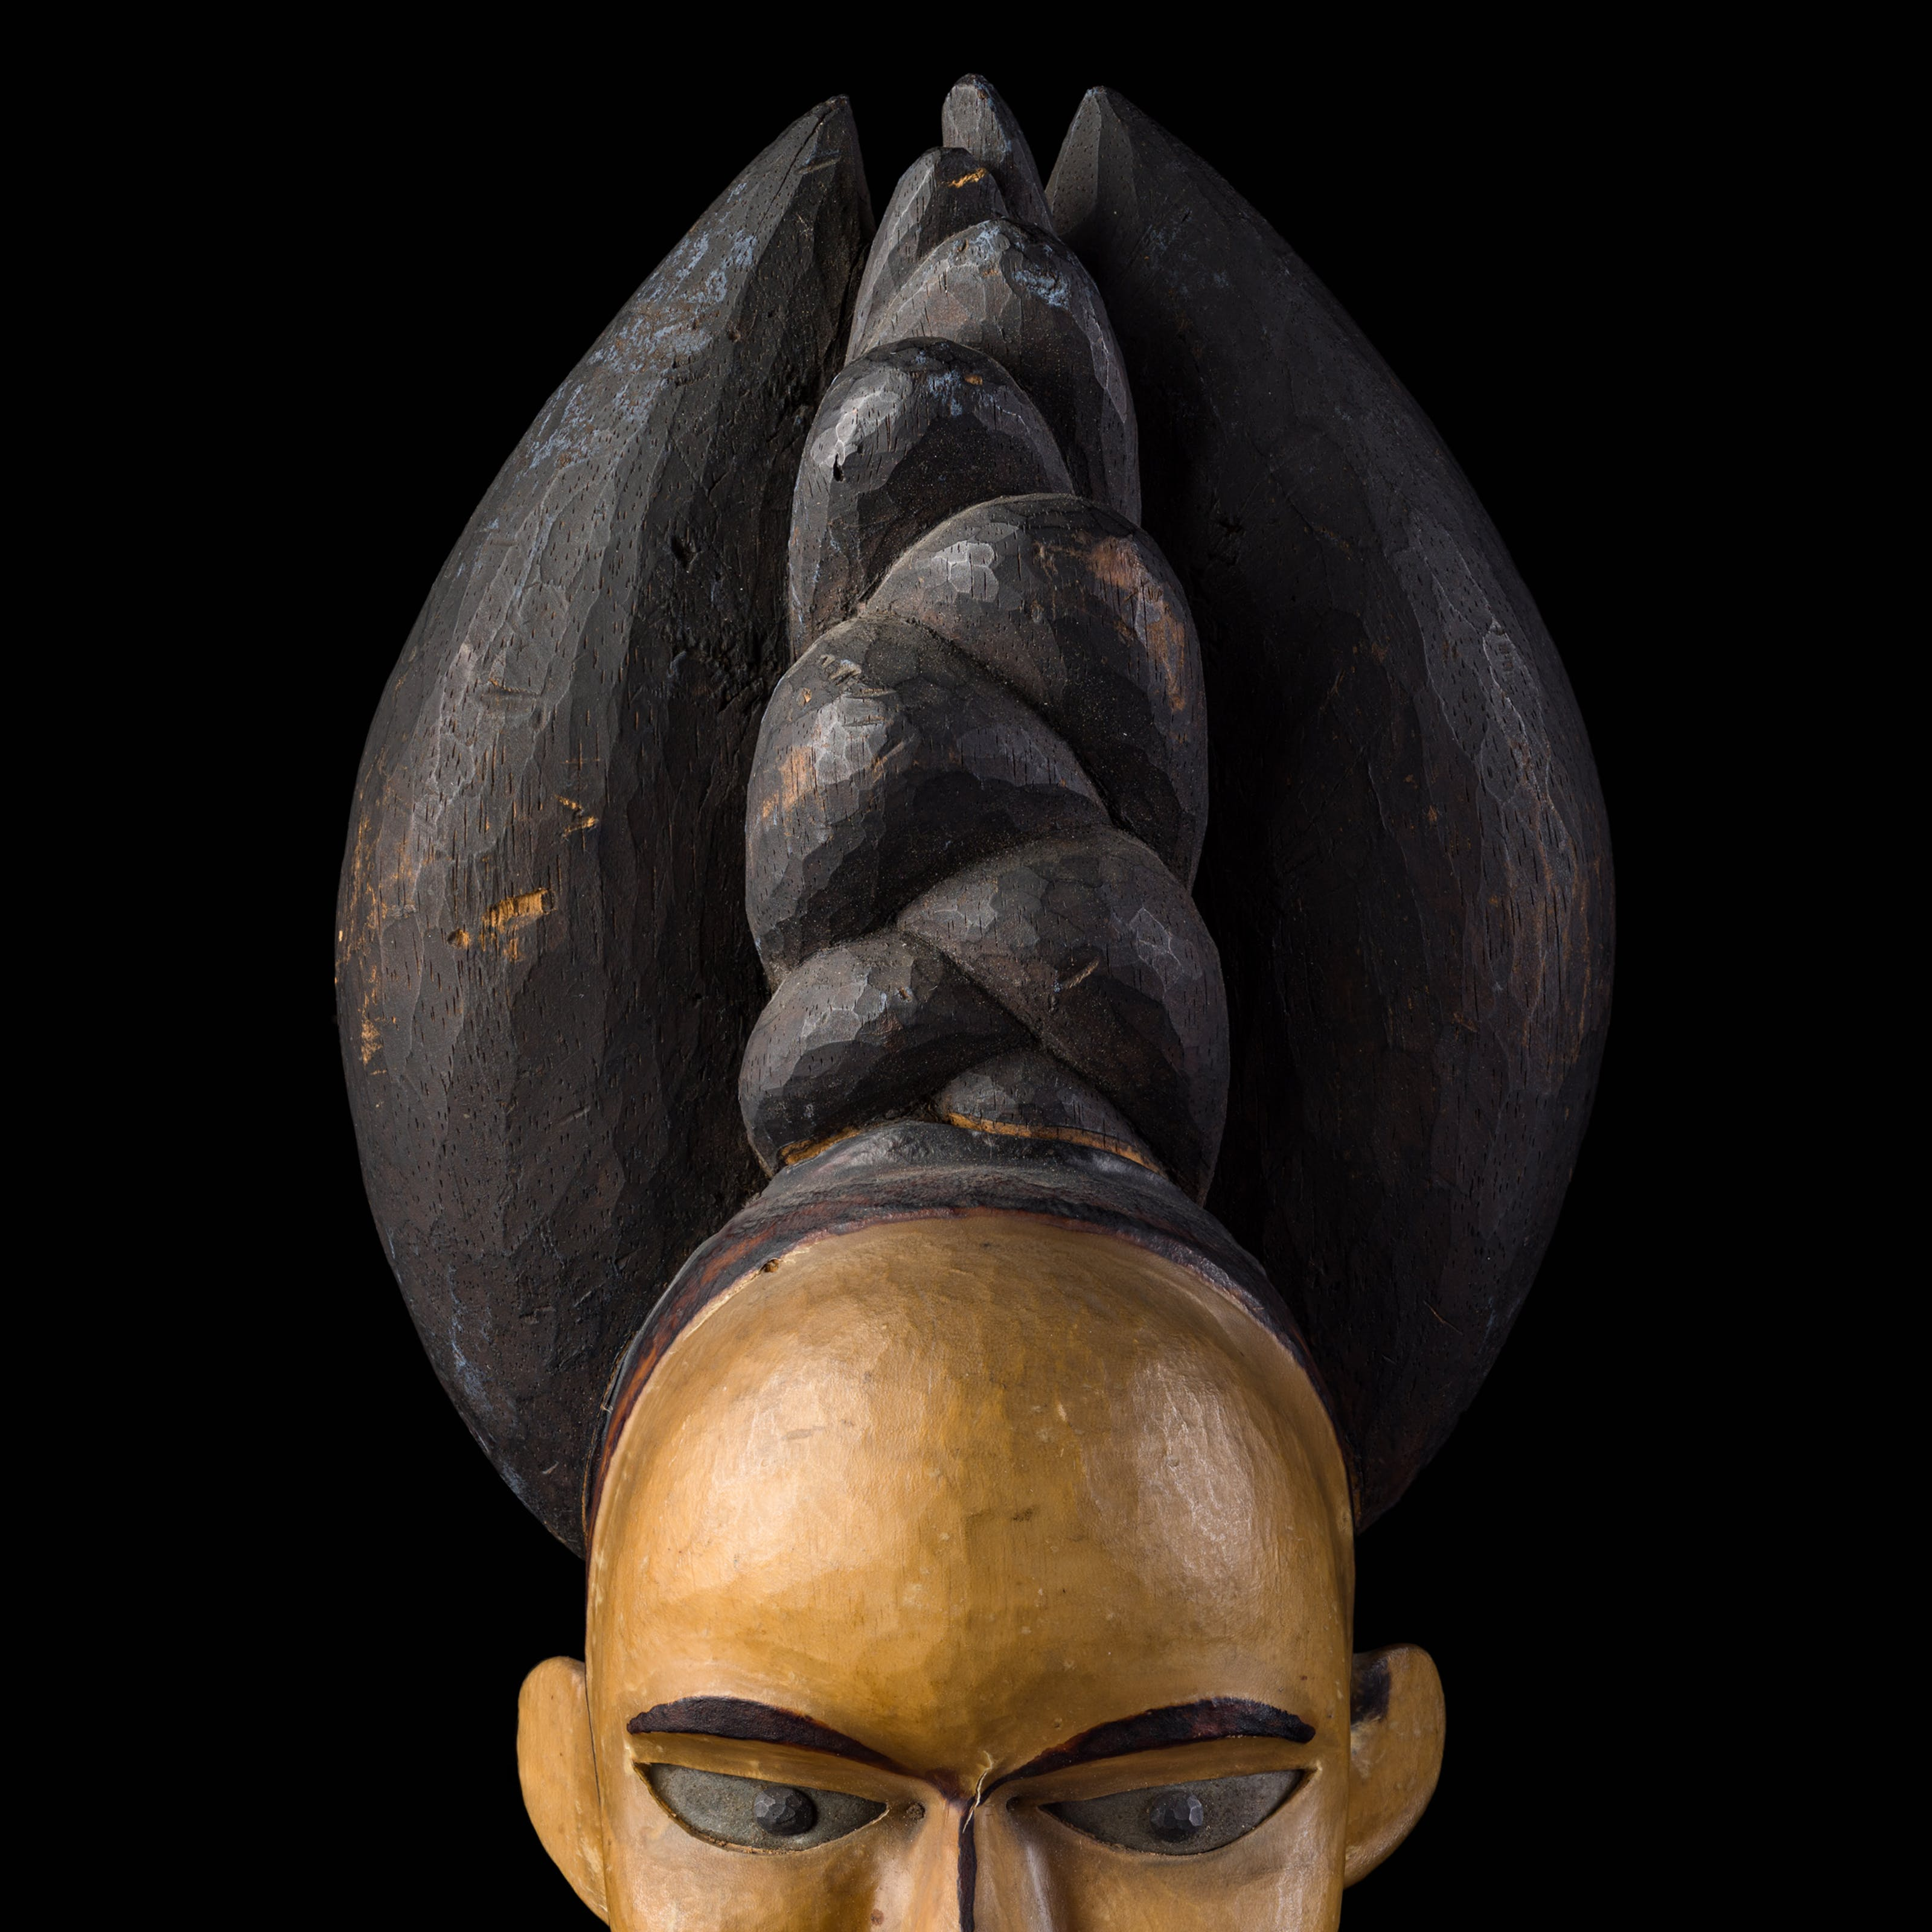 Photograph of the carved wooden head of a woman against a black background. On the woman's head is an elaborate headdress. The head is cropped by the bottom of the frame just below her eyes.